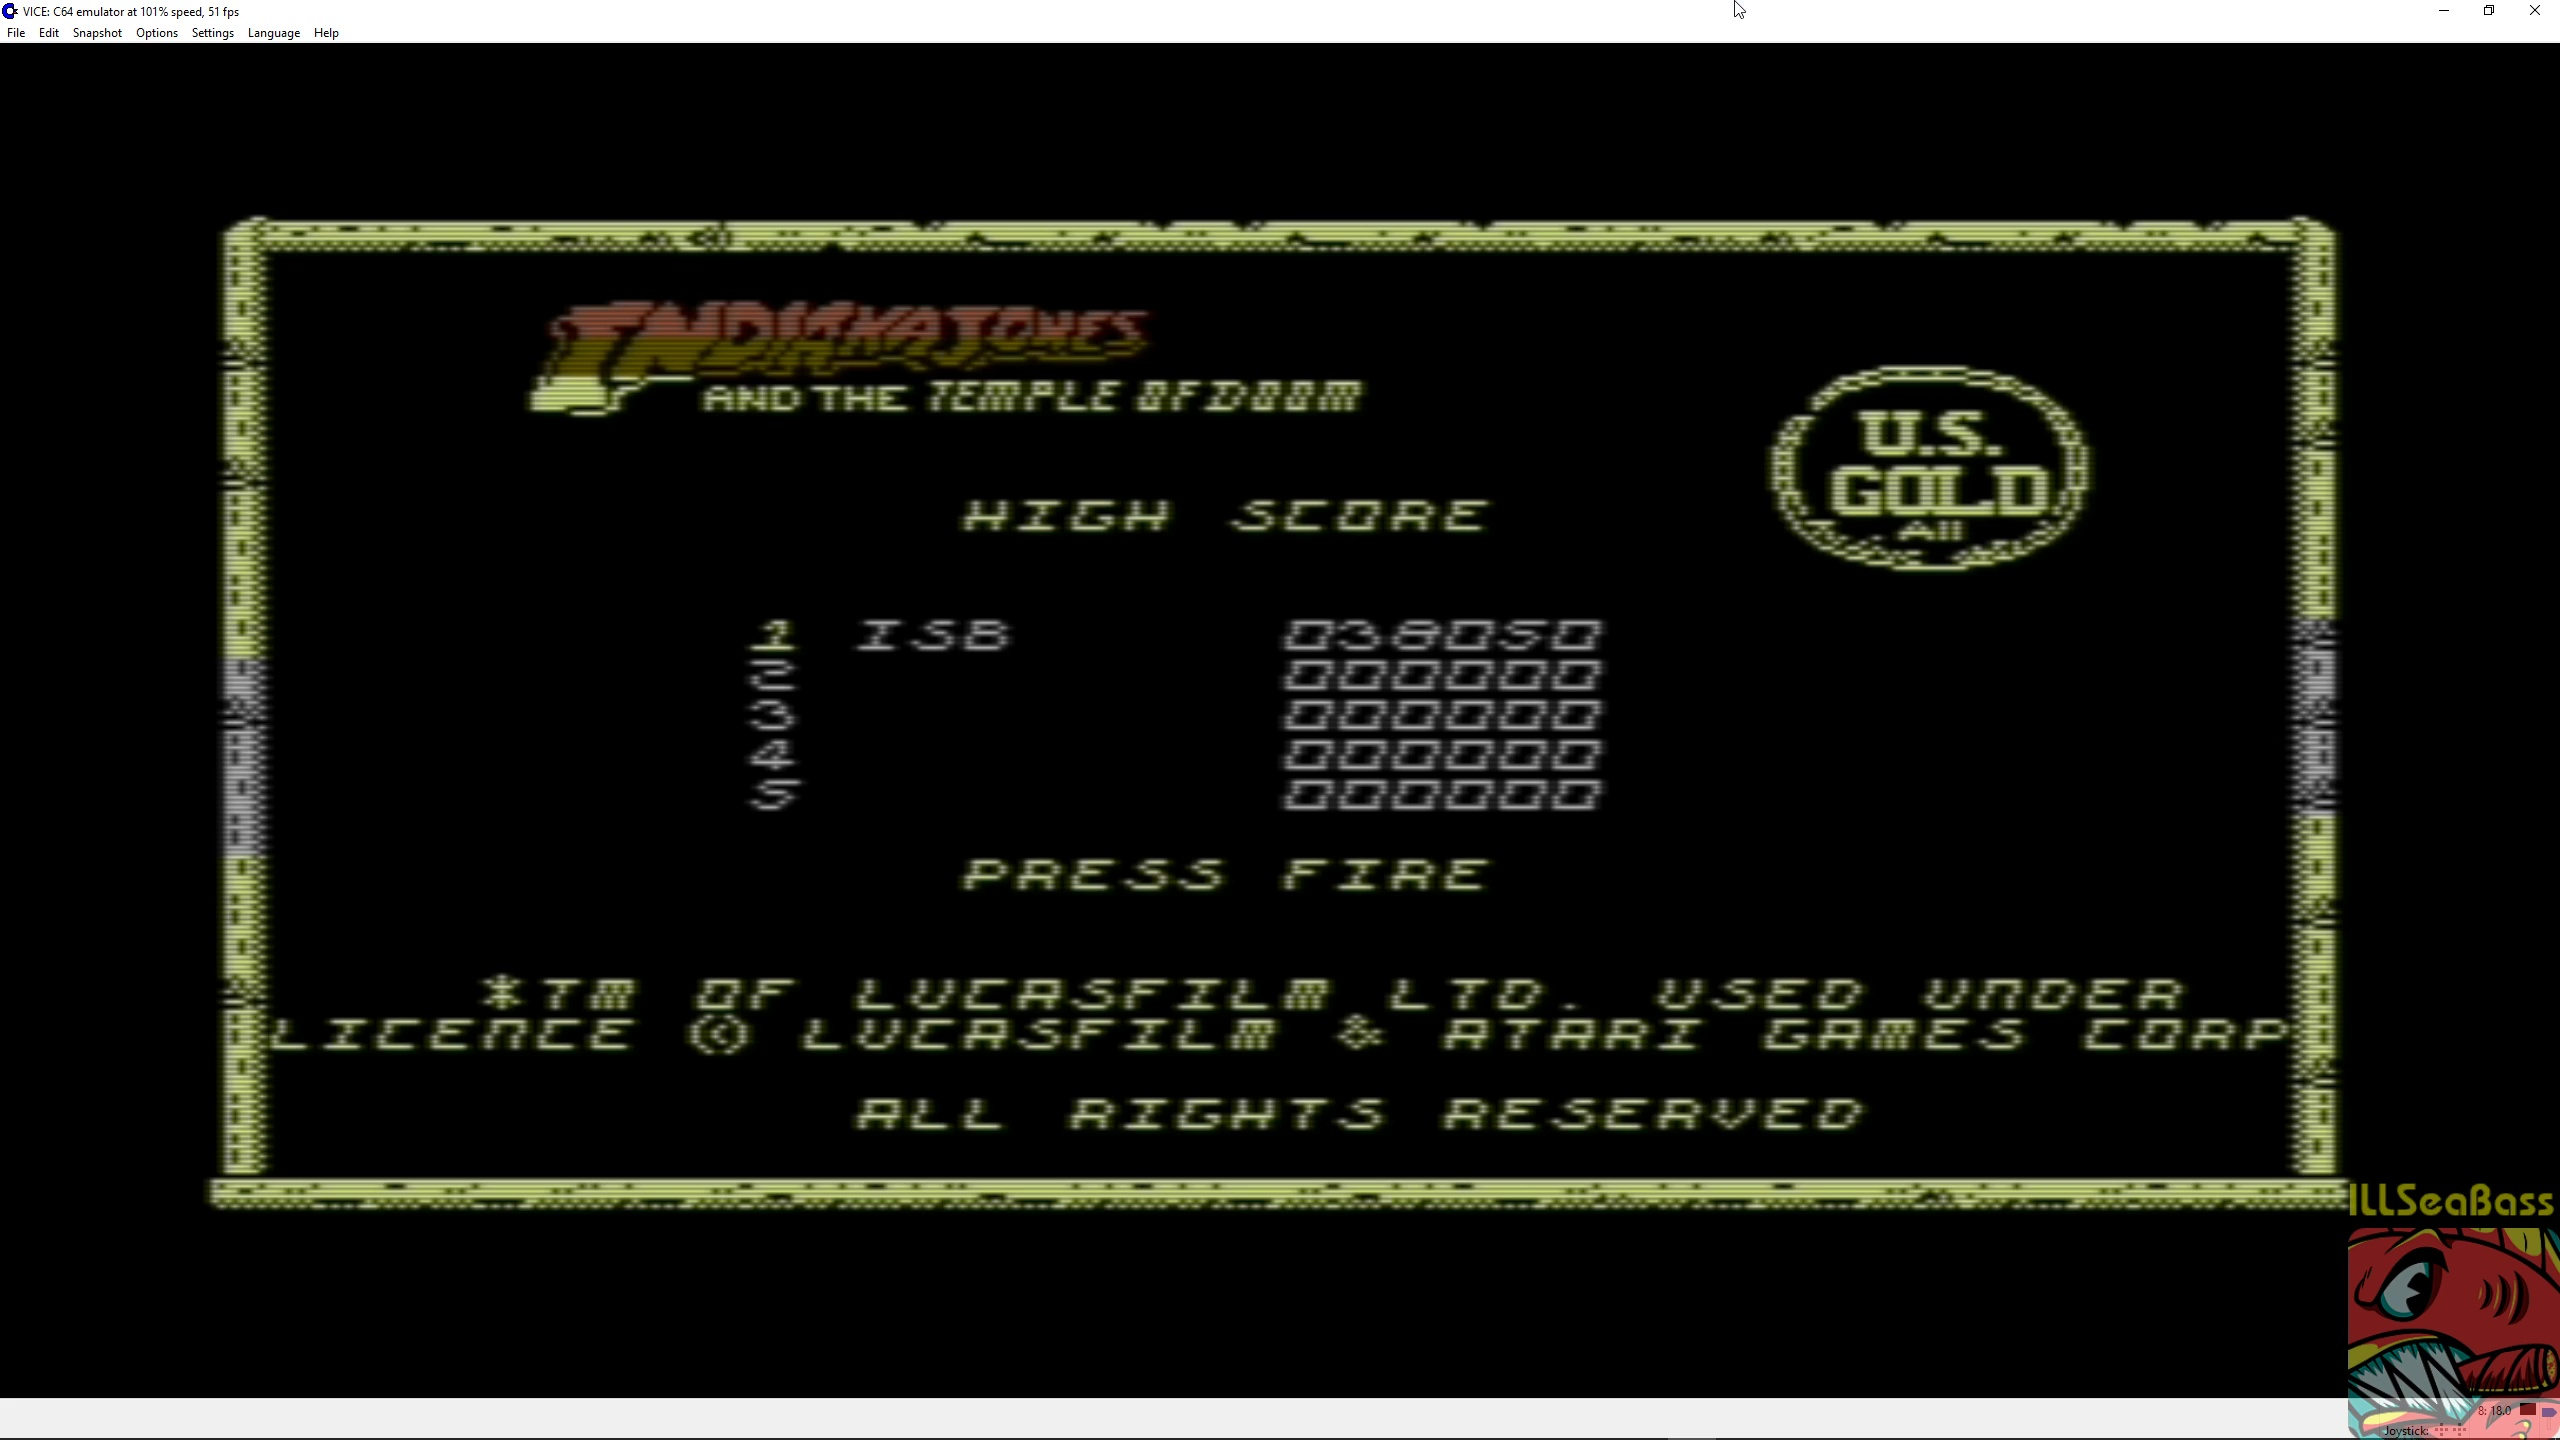 ILLSeaBass: Indiana Jones And The Temple Of Doom (Commodore 64 Emulated) 38,050 points on 2018-03-13 01:26:56